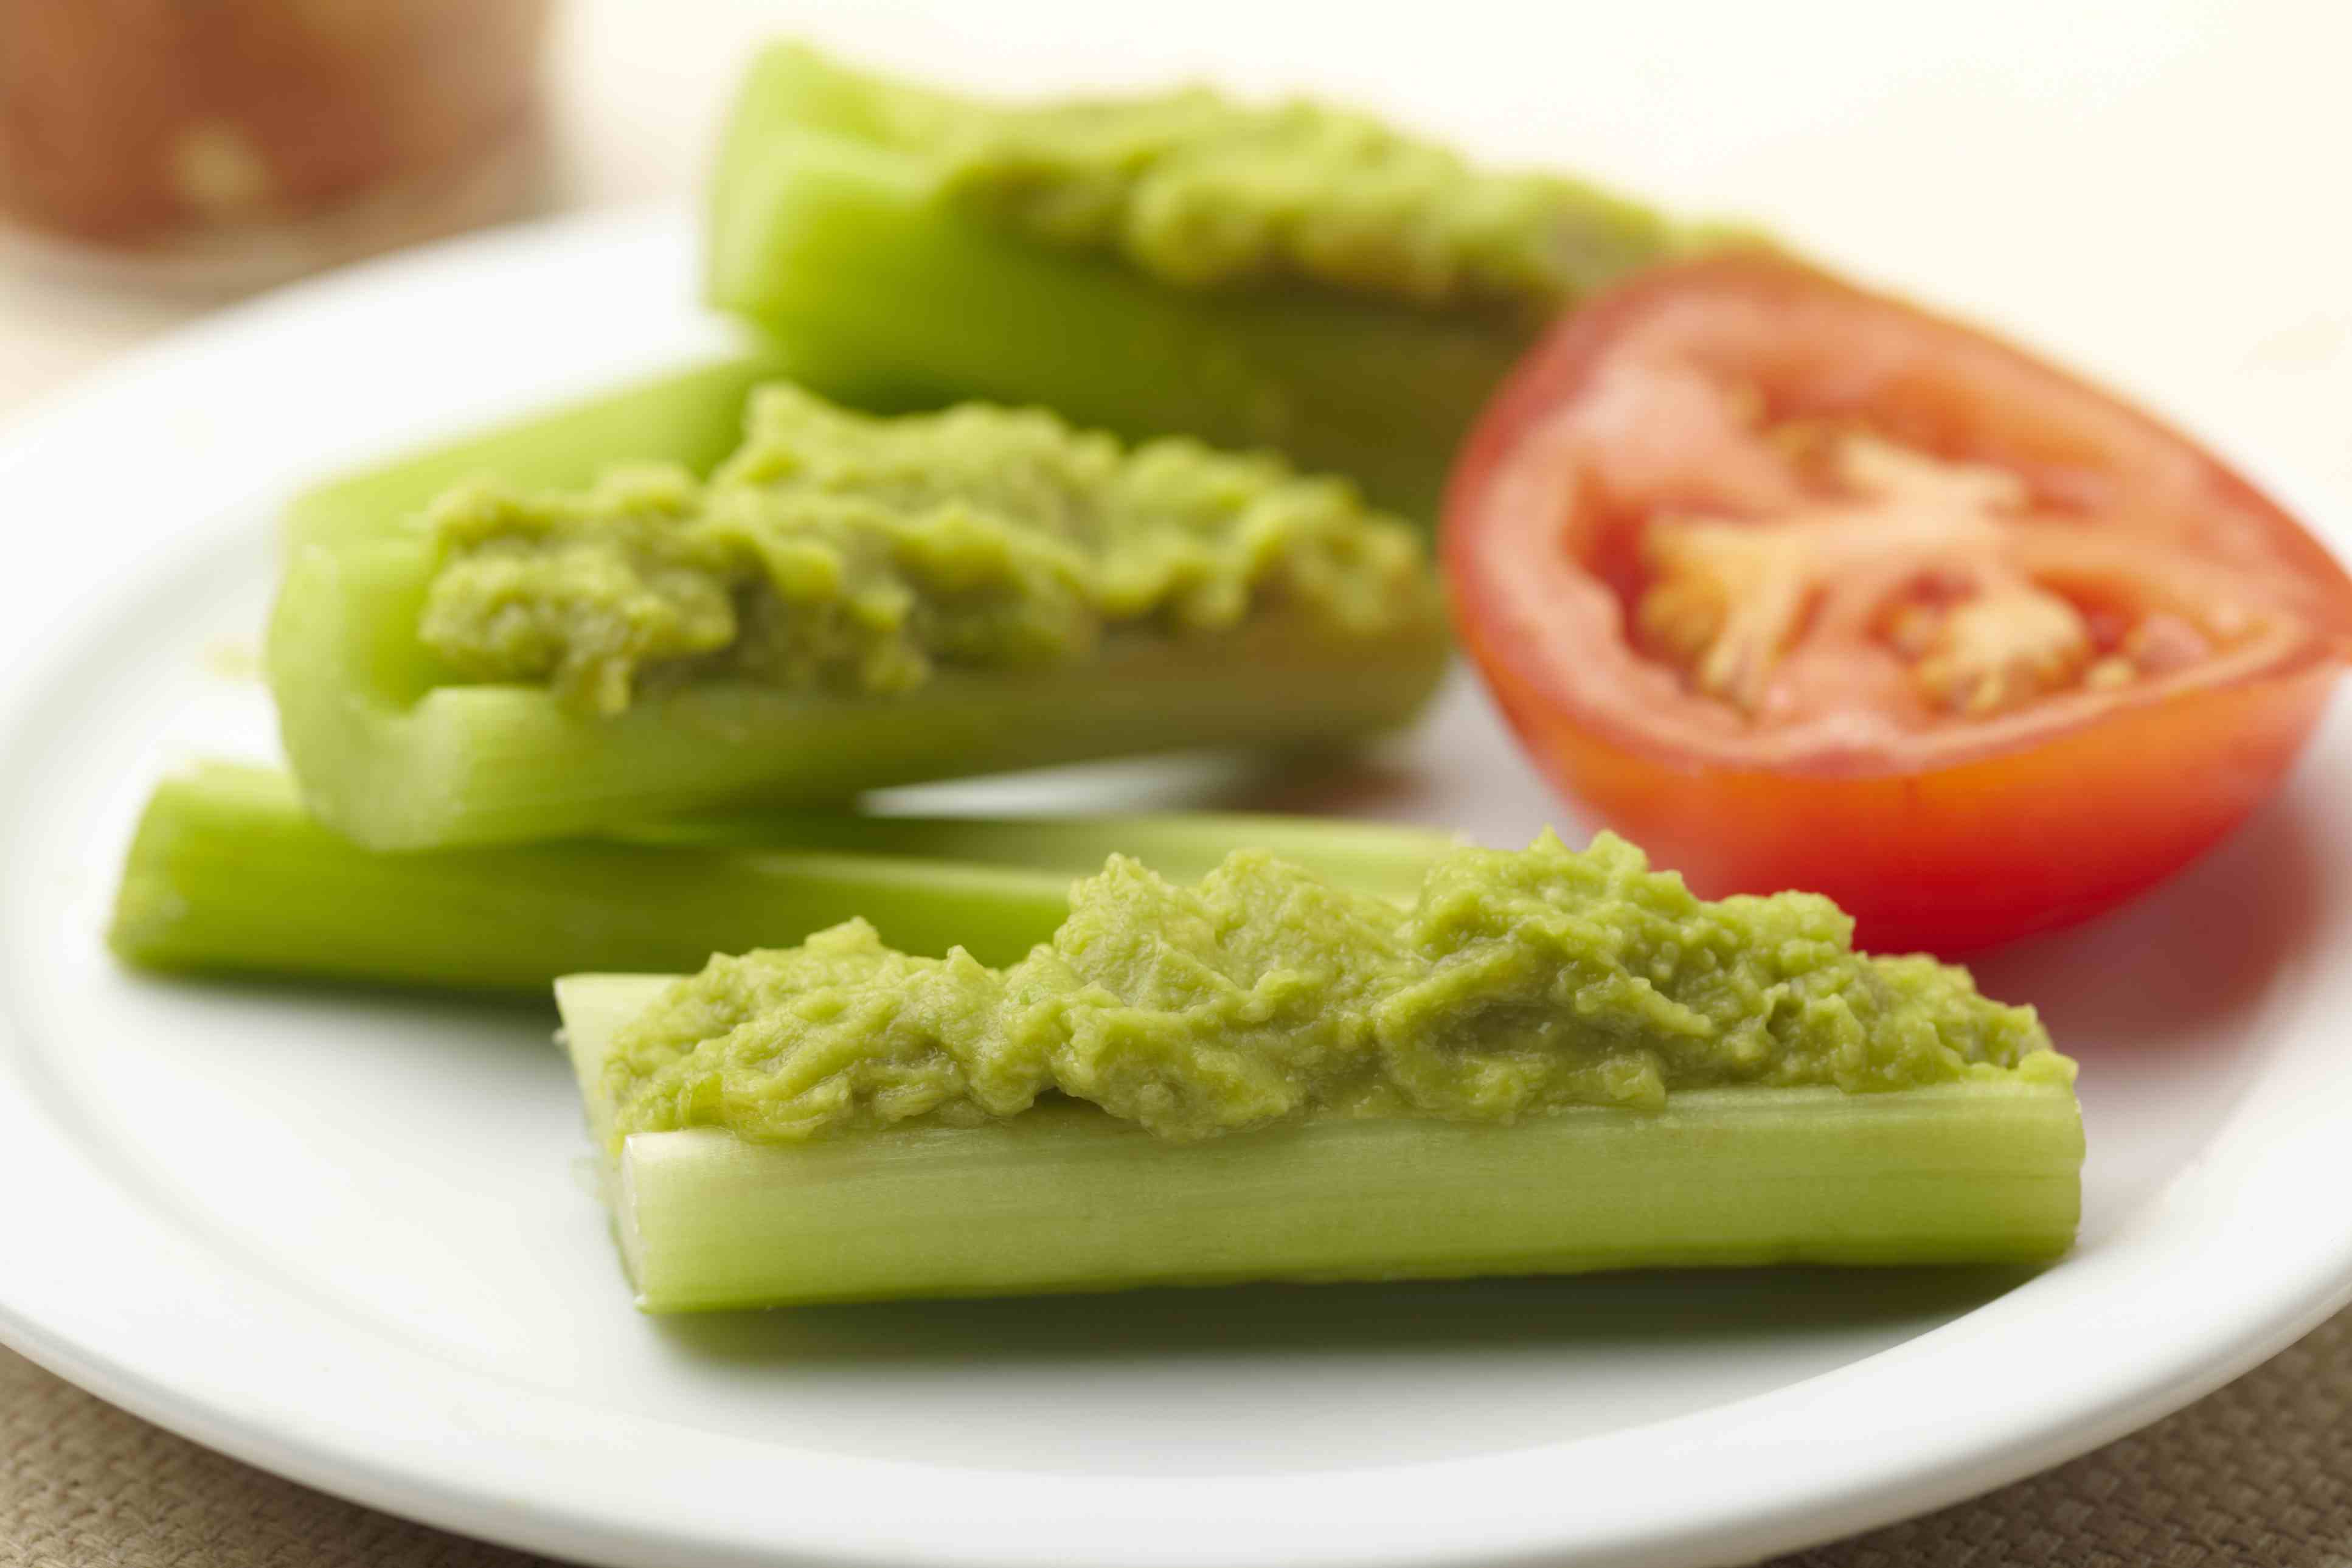 Guacamole on celery makes a great snack for work.